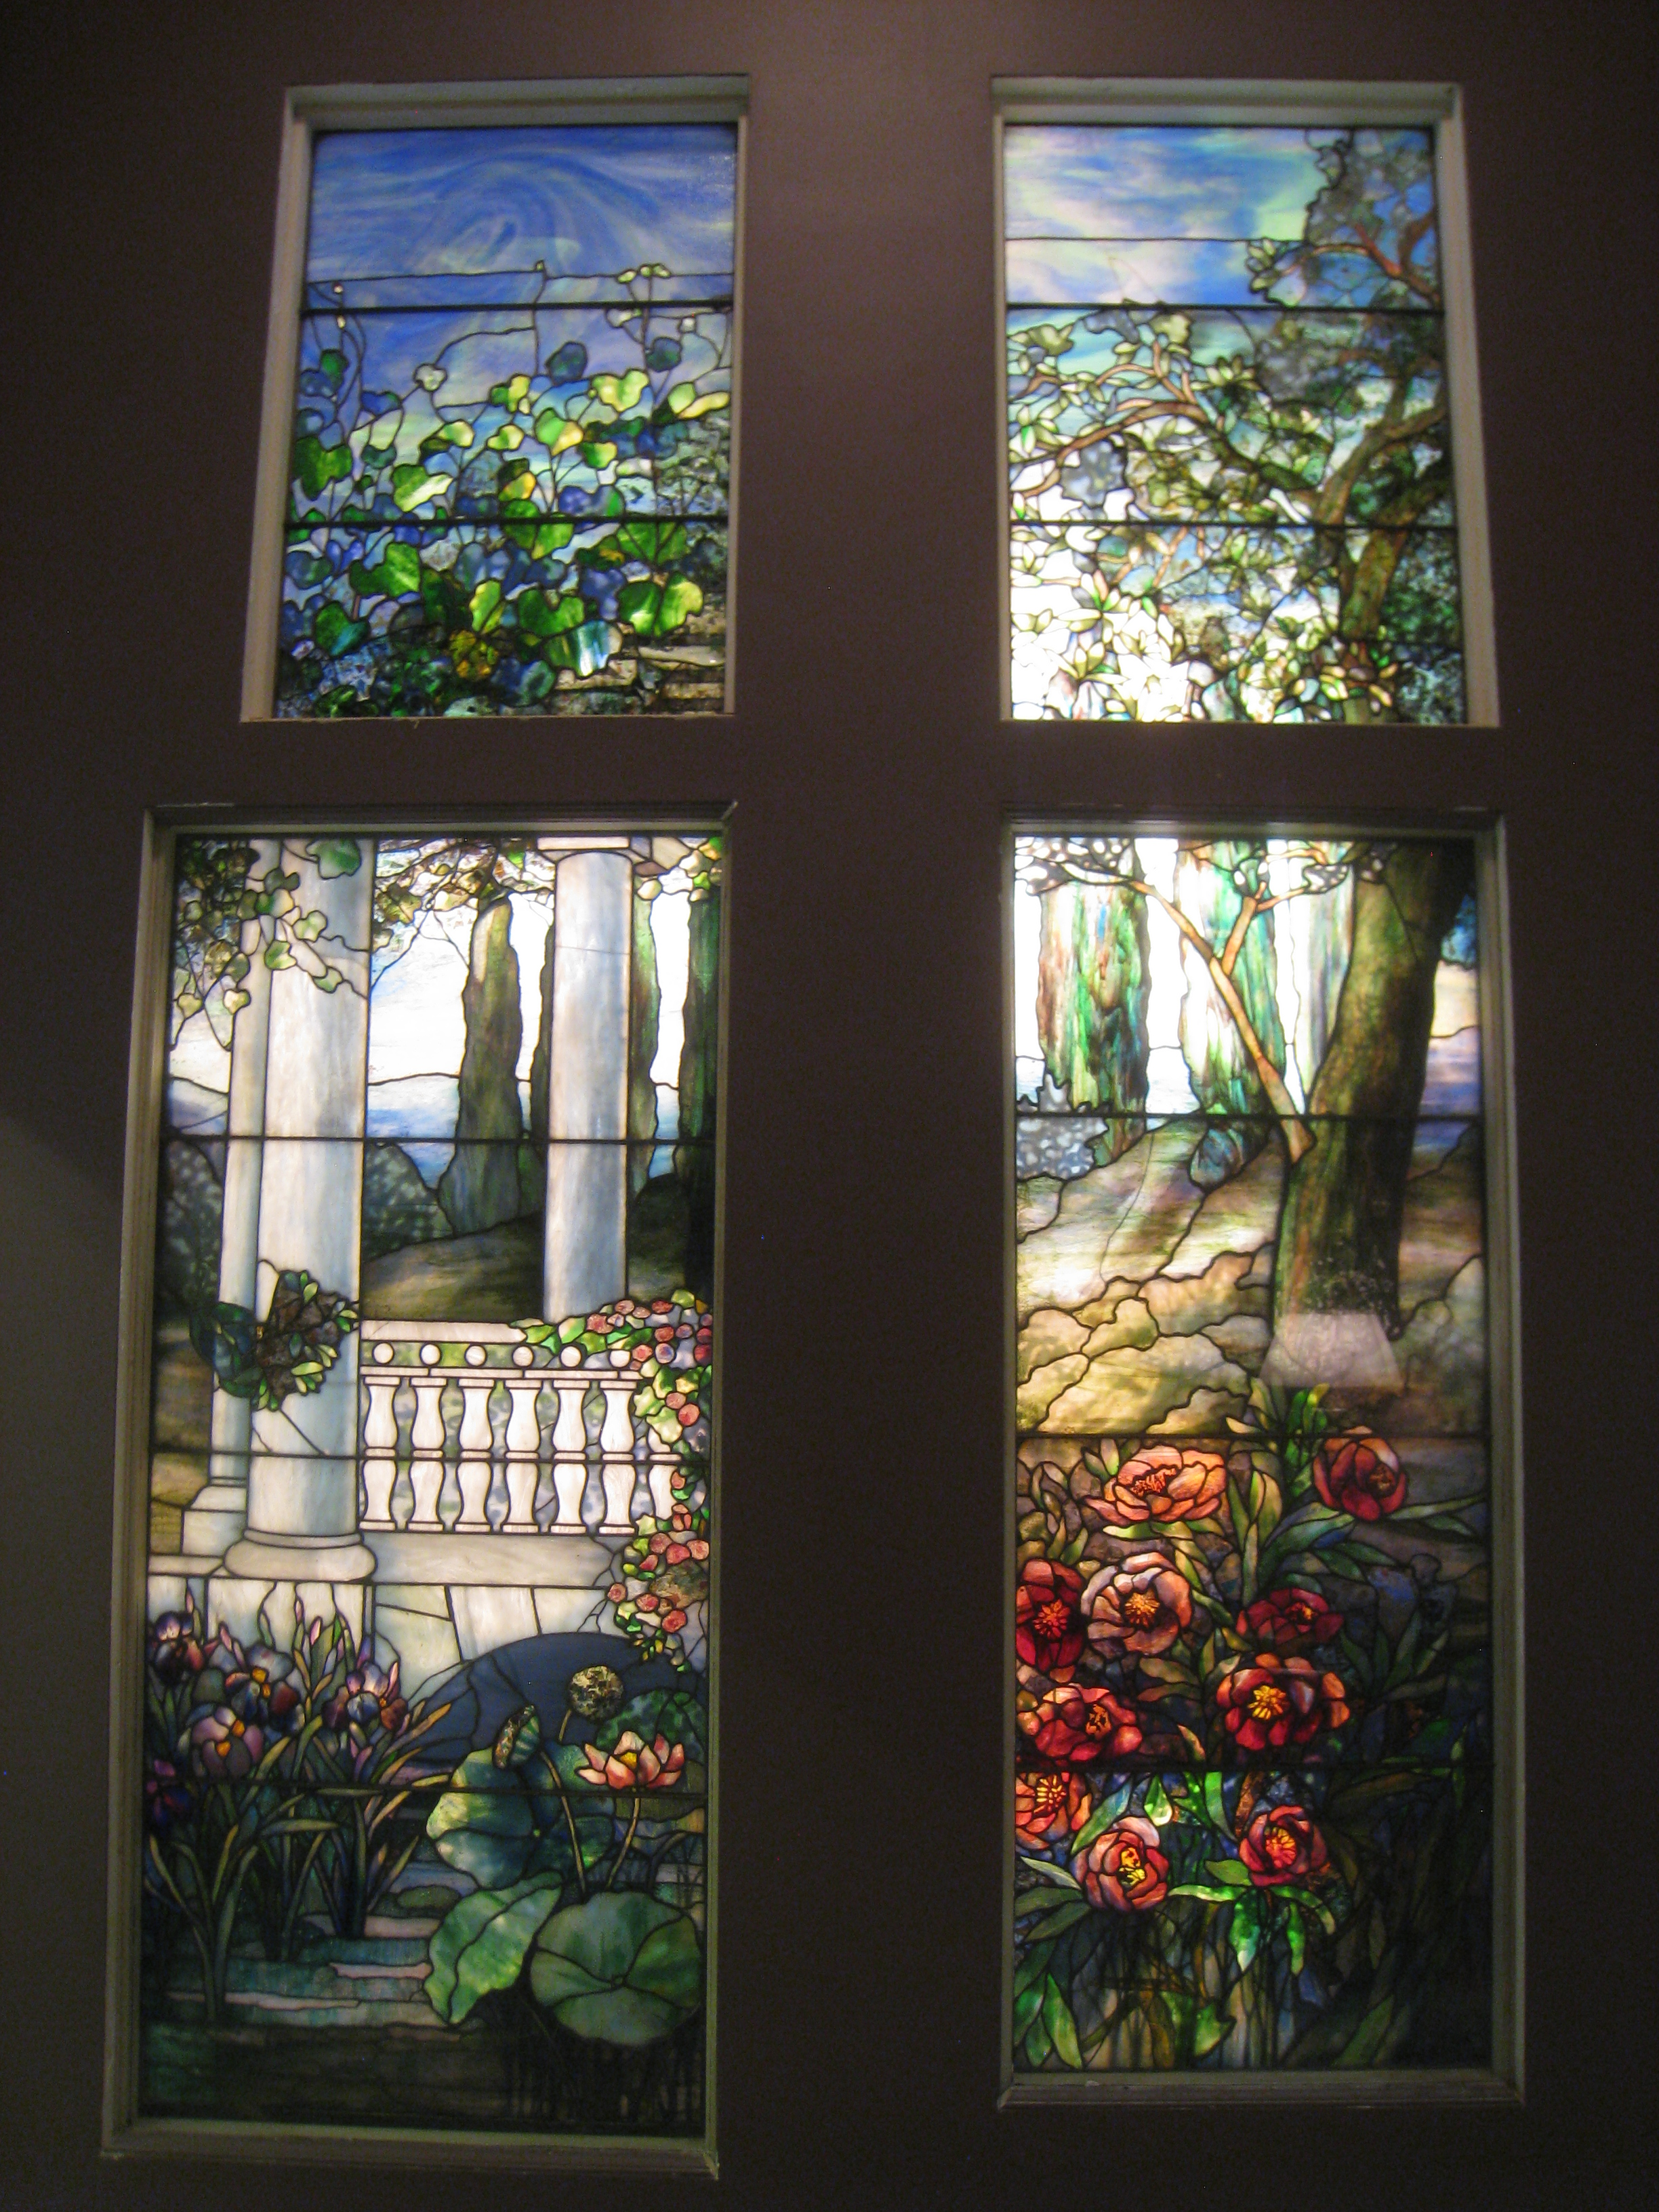 louis comfort tiffany creator of art In 1918 louis comfort tiffany established a foundation to operate laurelton hall - his estate at cold spring harbor, long island - as a summer retreat for young artists and craftspeople tiffany, son of the founder of the famous new york jewelry store tiffany & co, was himself a painter, interior decorator, and renowned innovator in the design .